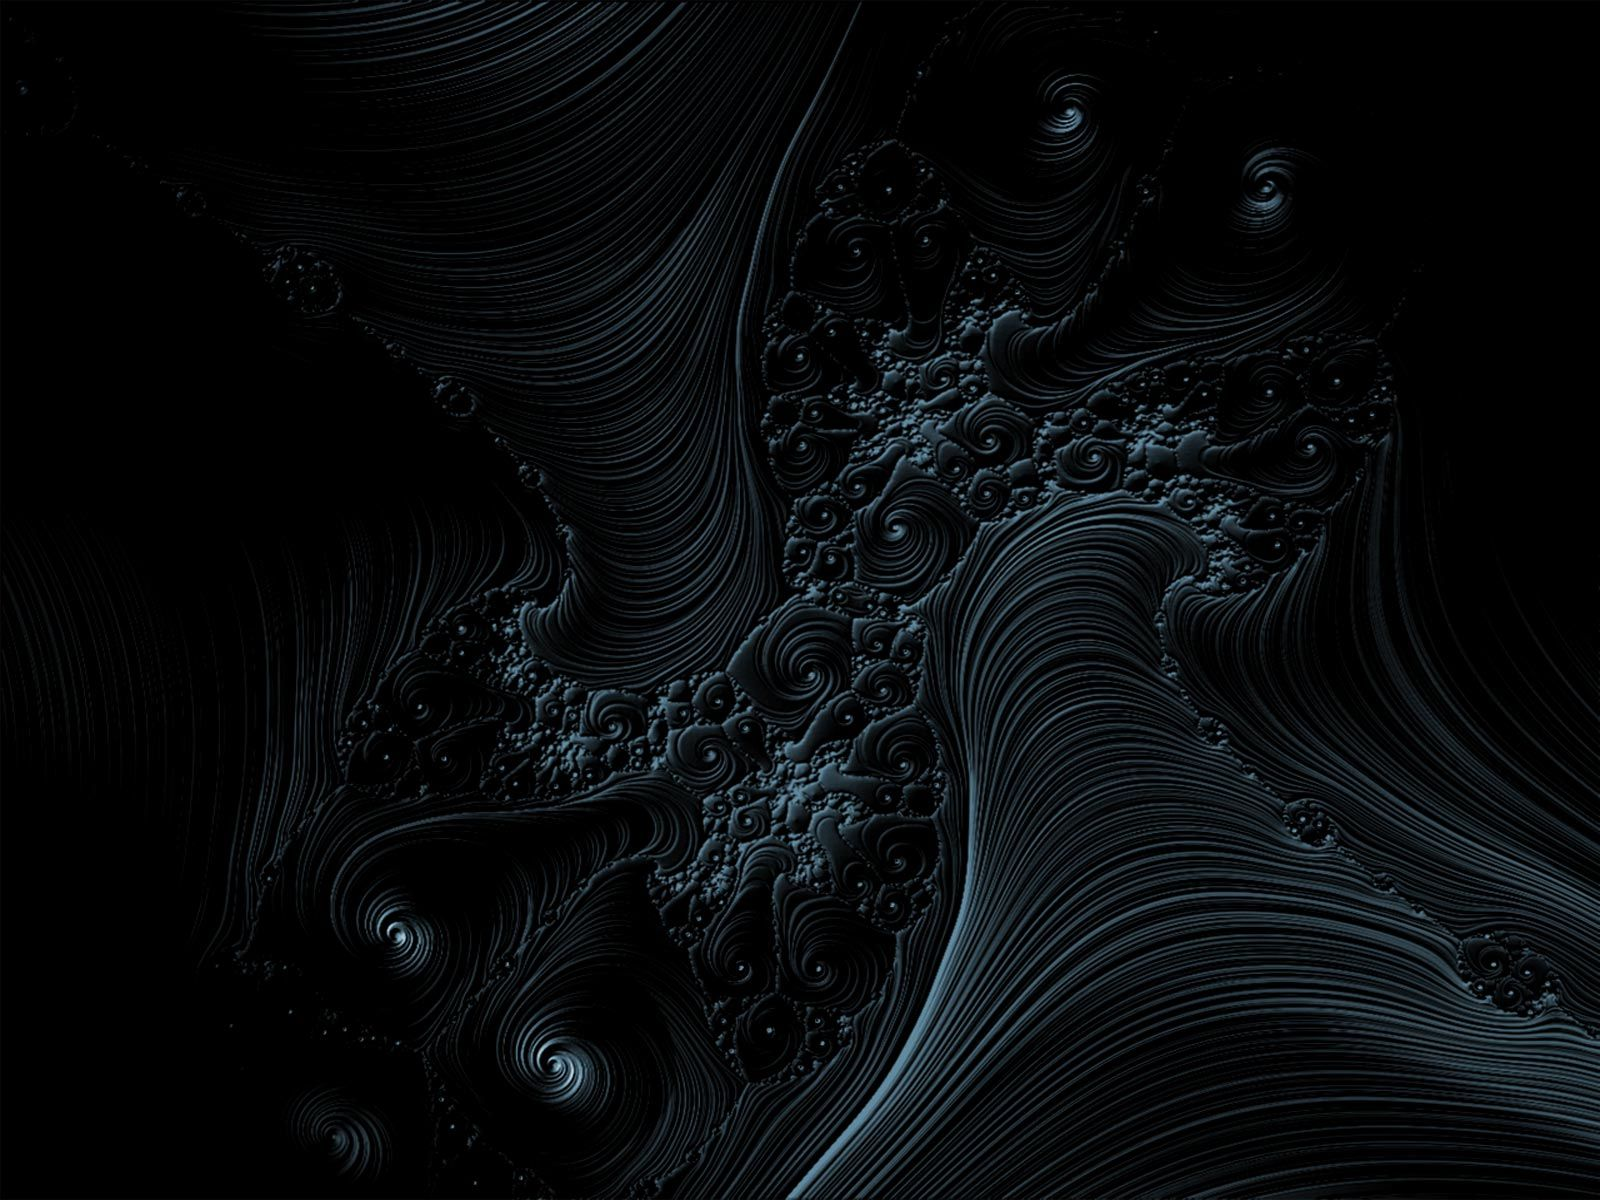 Beautiful Fractal Art Dark Abstract Art In 2019 Dark